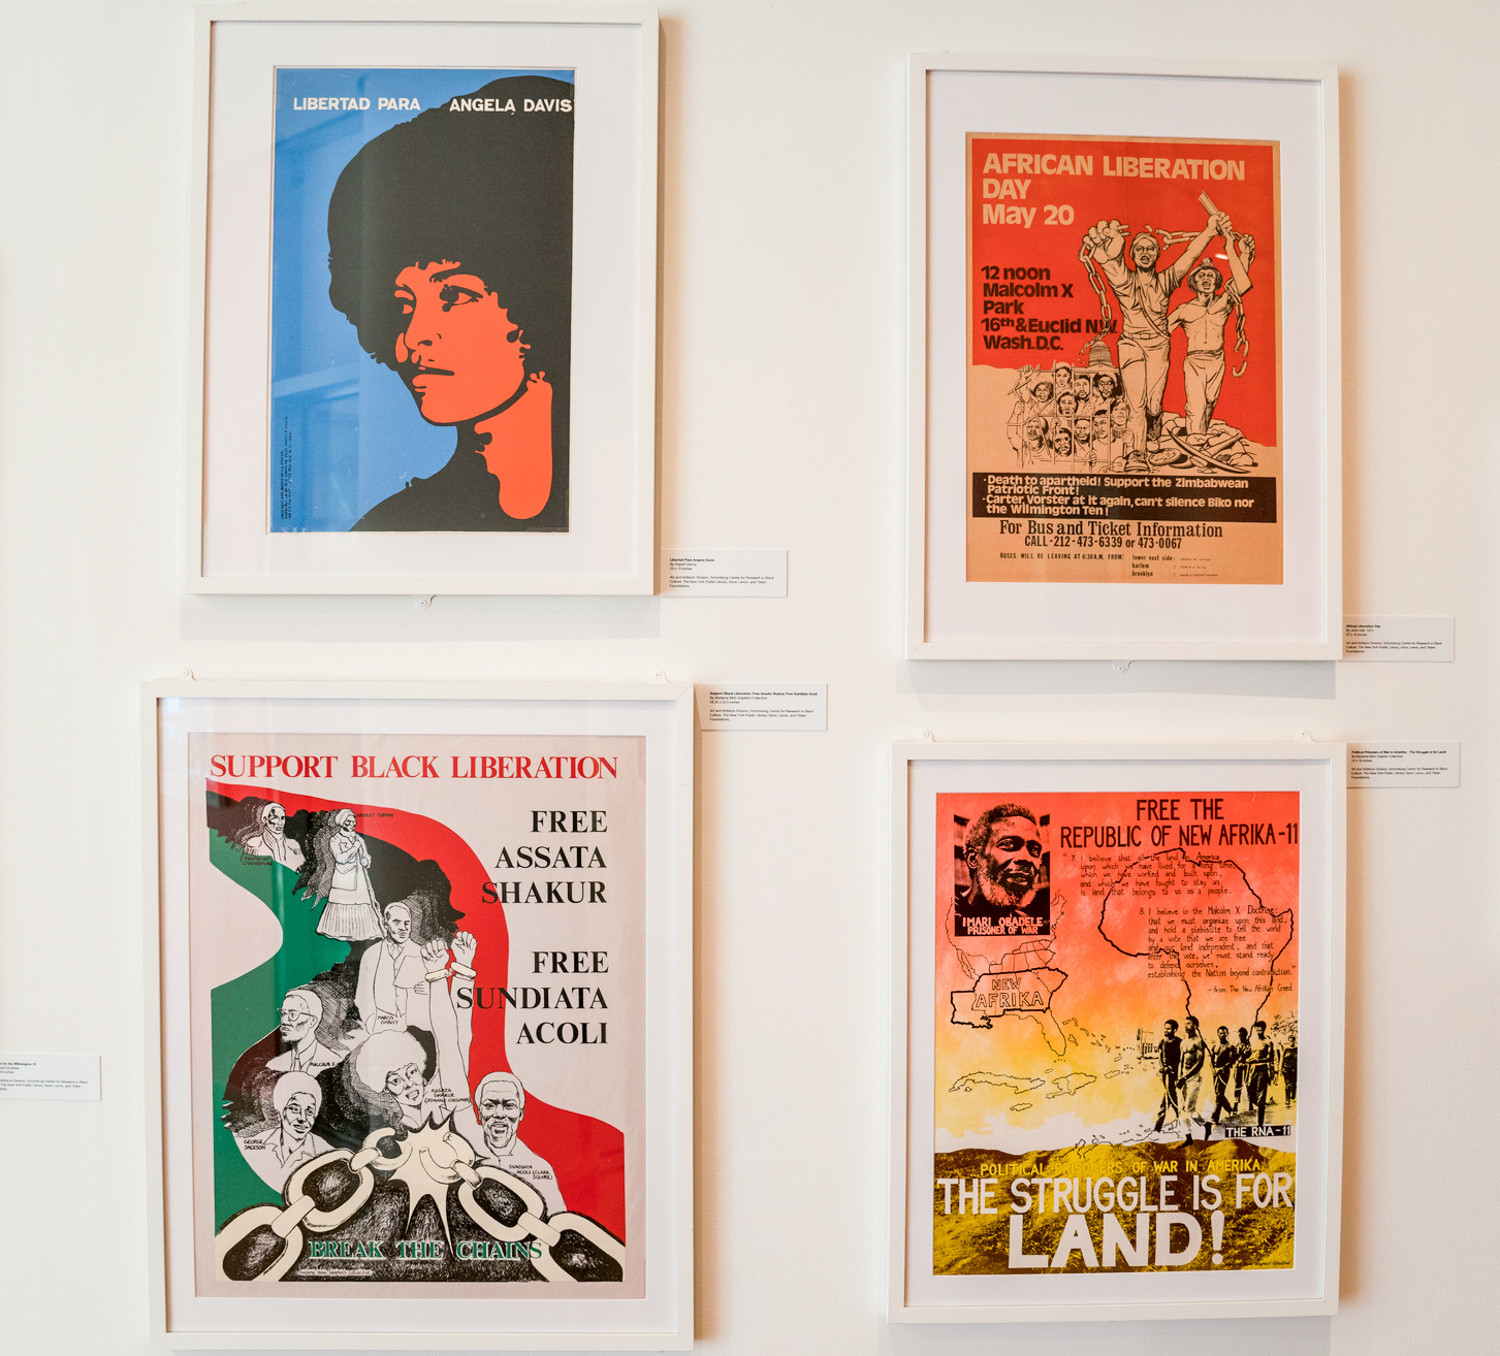 'Power in Print,' an exhibition at the Schomburg Center for Research in Black Culture in Harlem, shows the posters of the black power movement. It runs through March 31.